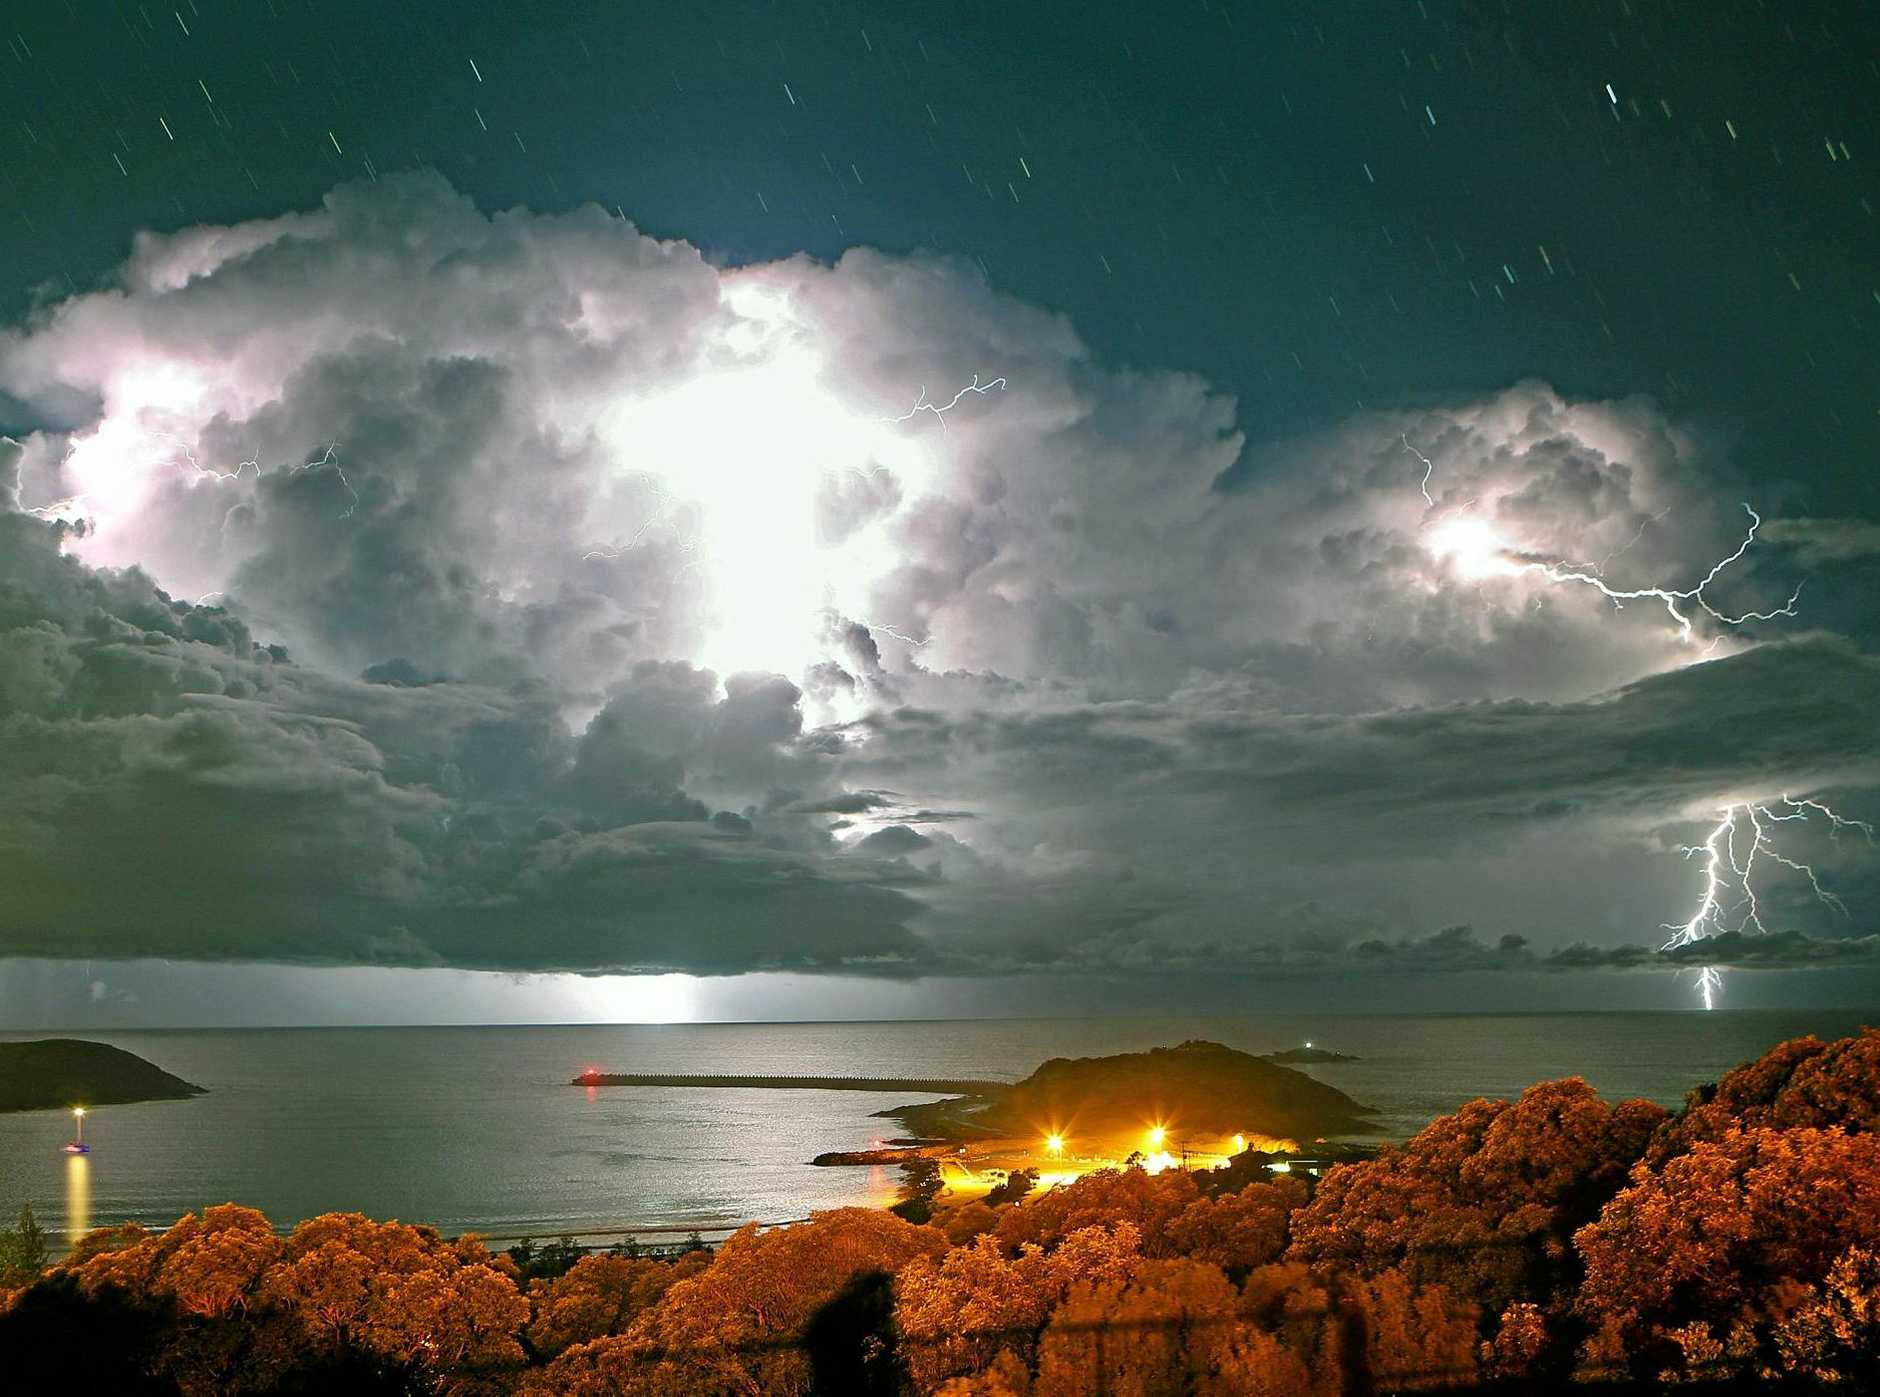 A lightning and thunder storm rumbled over Coffs Harbour overnight.